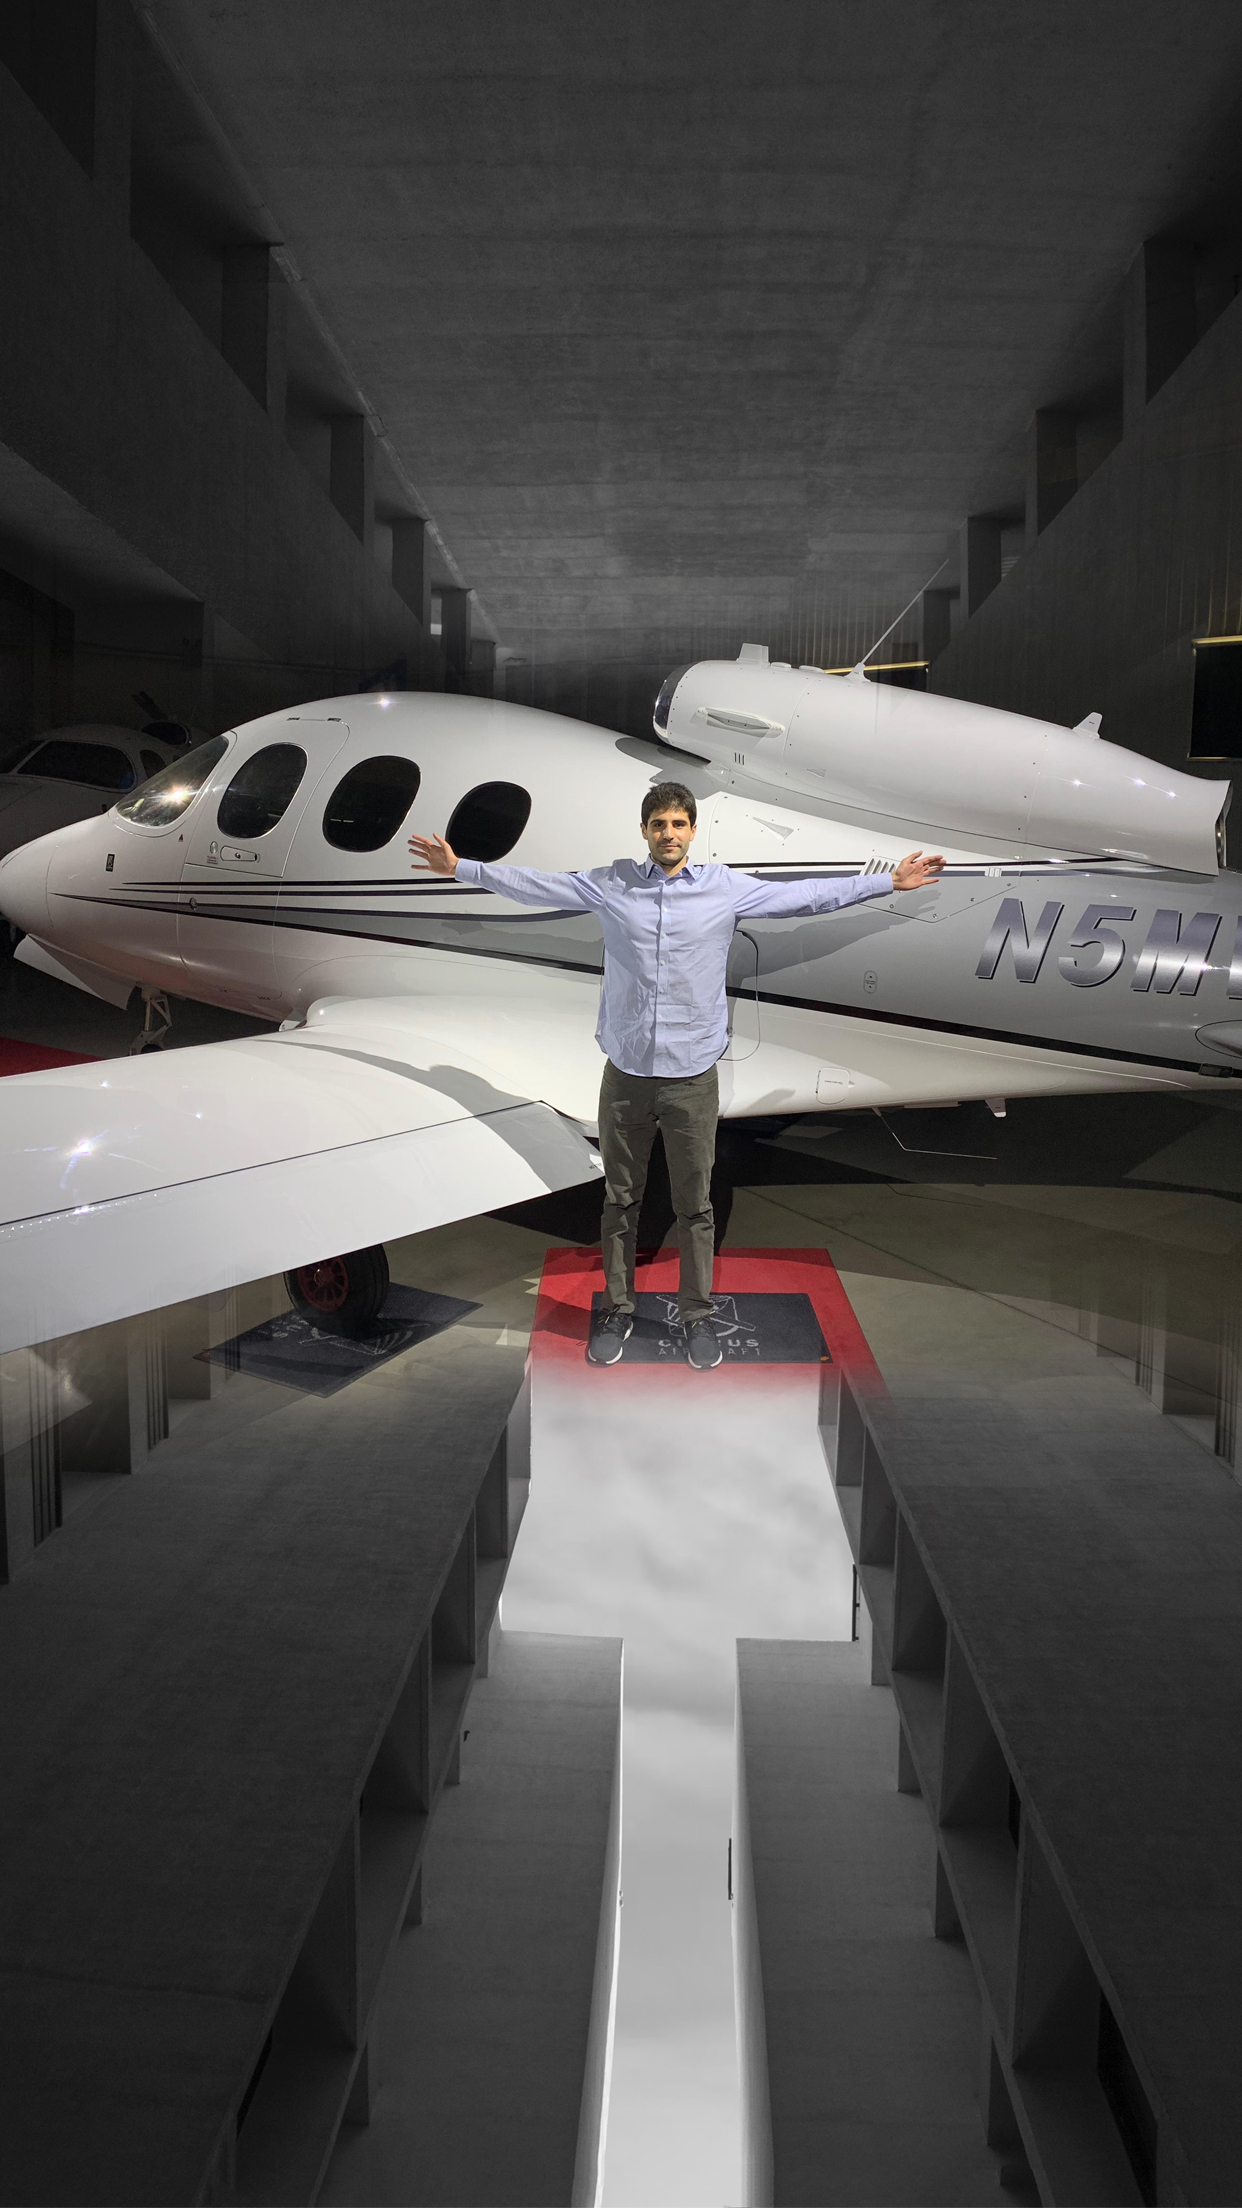 Season 1 Episode 6: N5MW The Vision Jet!  Max Weldon  Max Weldon, a newly rated jet pilot, gives a first hand perspective on his training with Cirrus aircraft as he transitions from the SR22 to the SF50 Vison Jet!